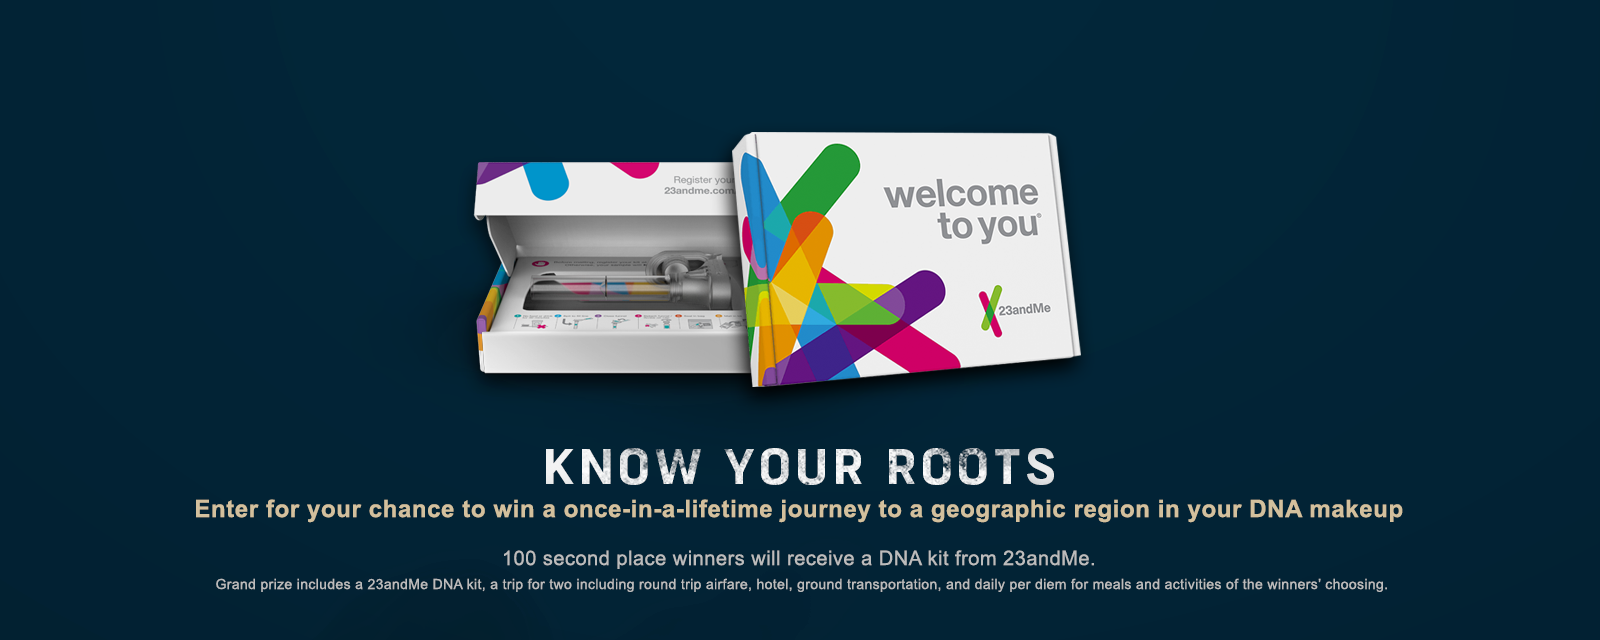 Know your roots.  Enter for your chance to win a once-in-a-lifetime journey to a geographic region in your DNA makeup.  100 second place winners will receive a DNA kit from 23andMe.  Grand prize includes a 23andMe DNA kit, a trip for two including round trip airfare, hotel, ground transportation, and a daily per diem for meals and activities of the winners' choosing.